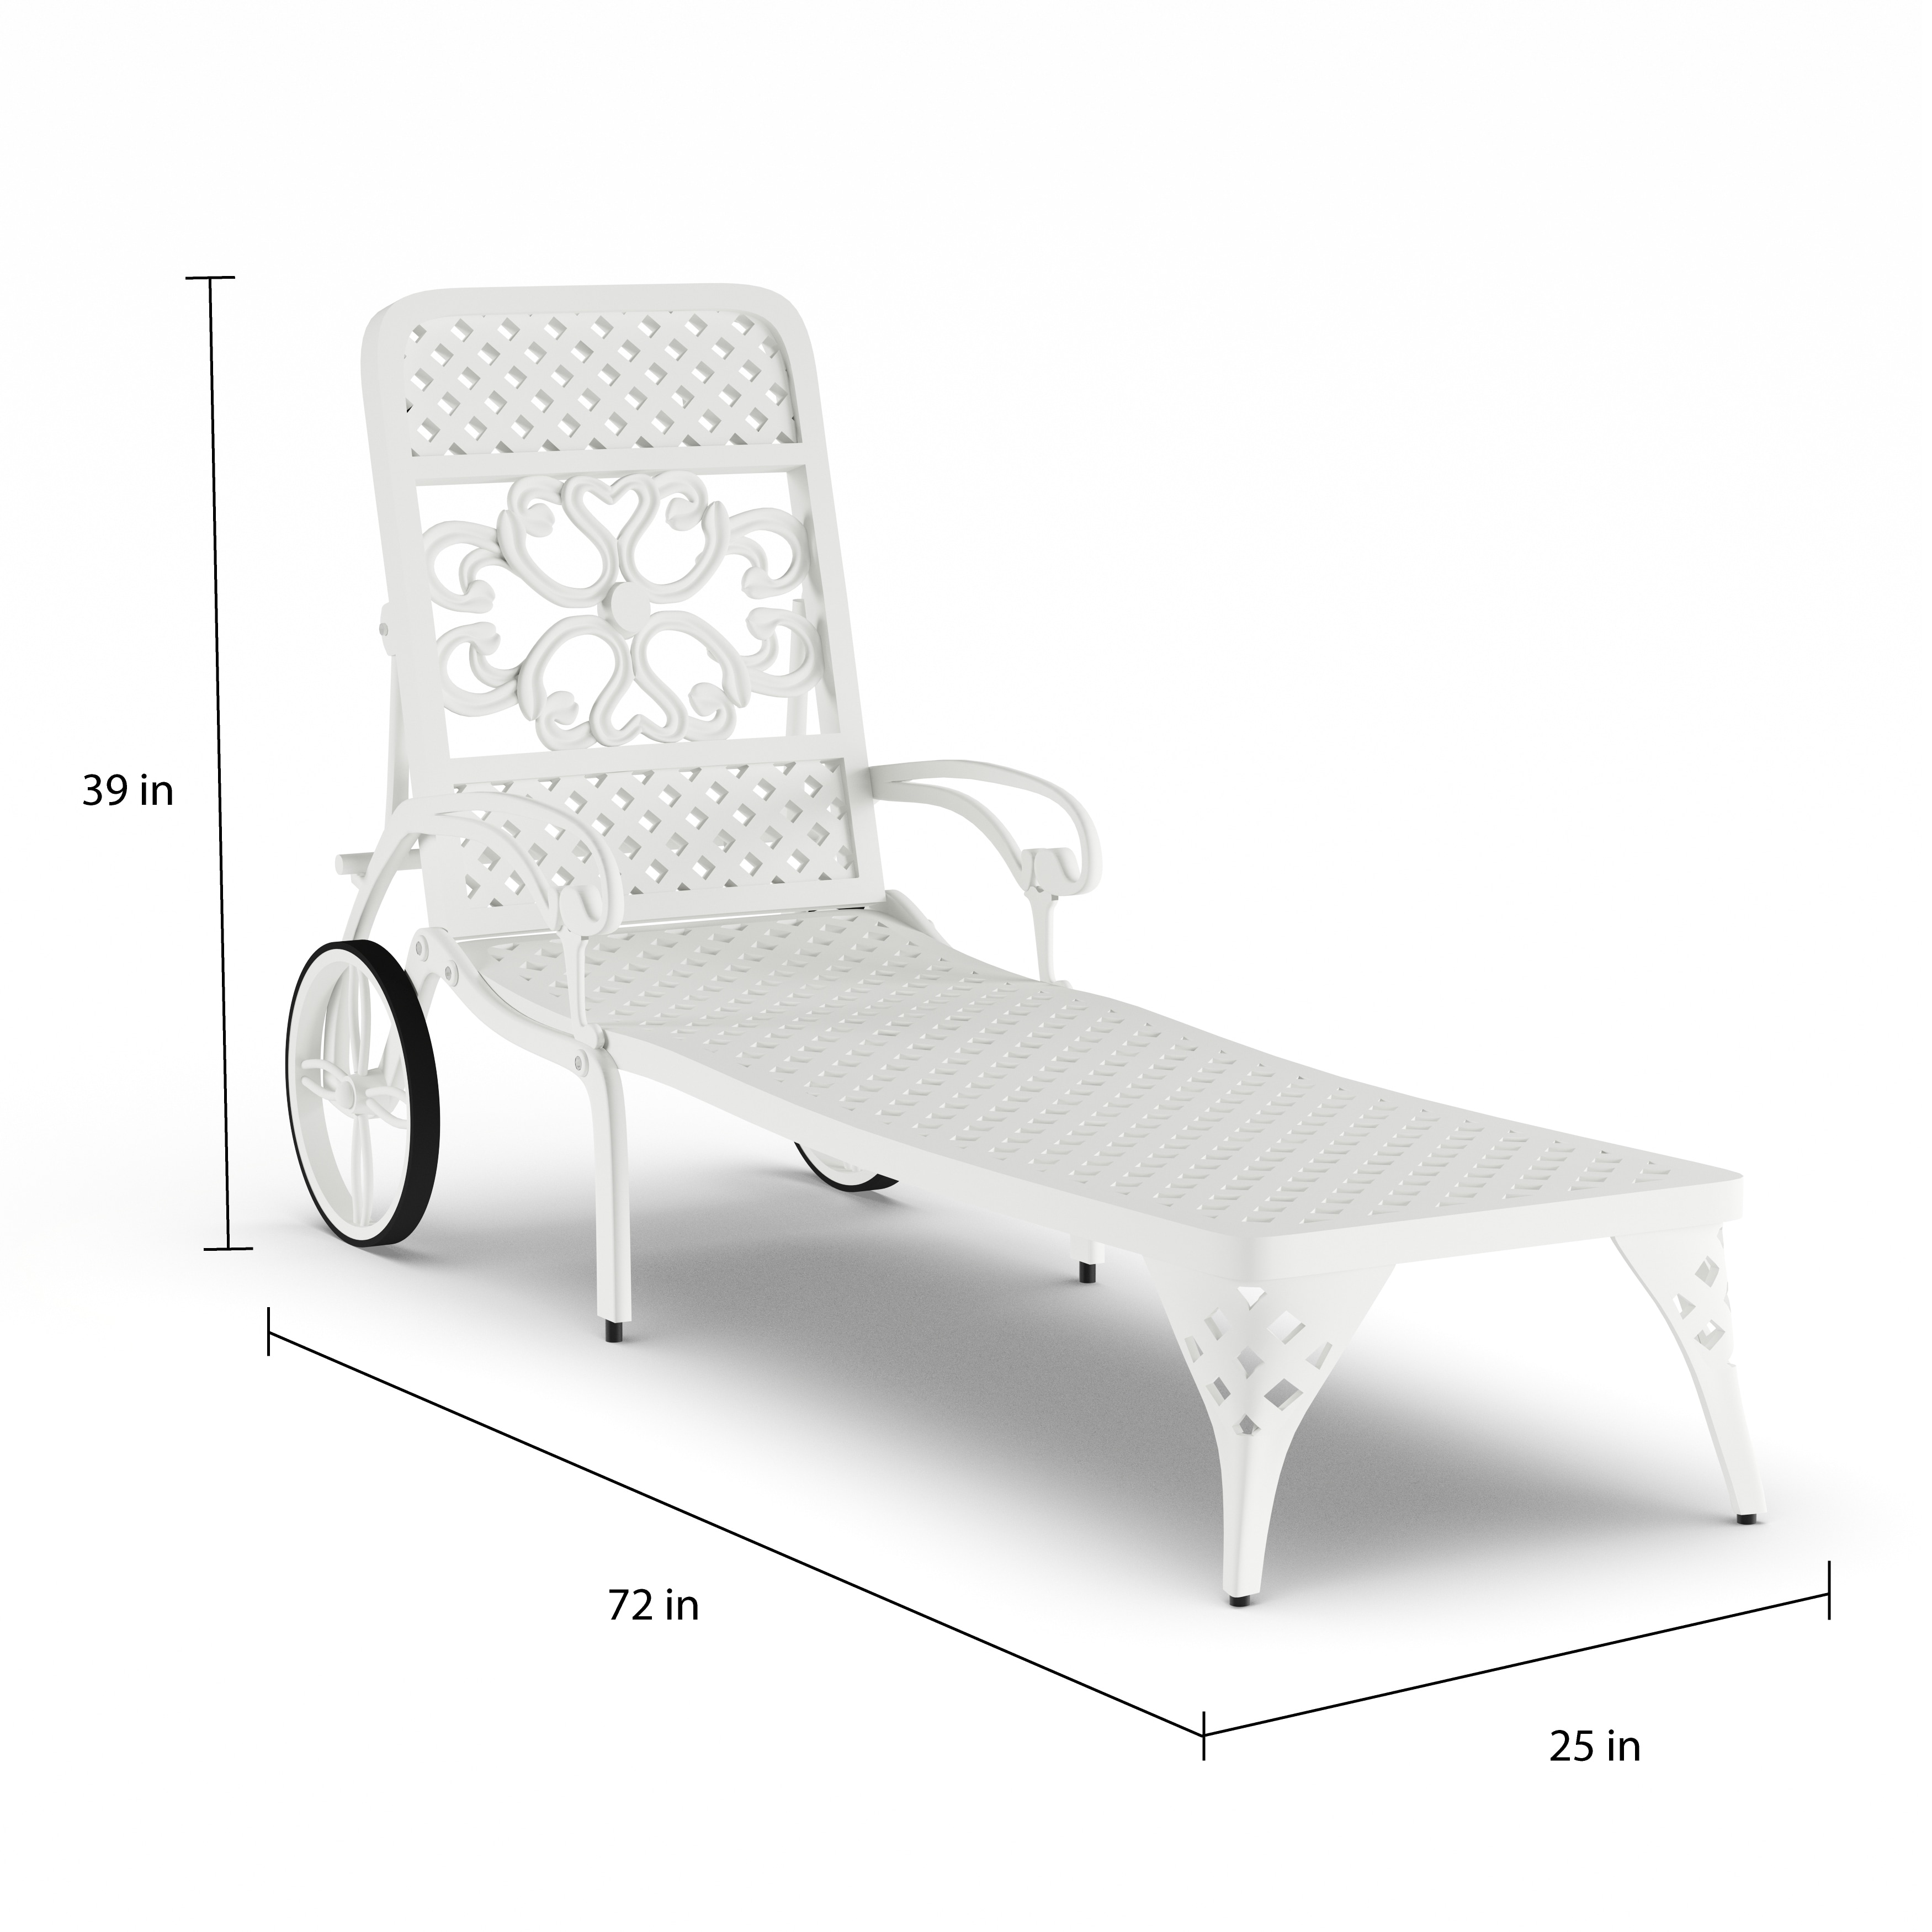 marvelous furniture cool lounge theme pink bedroom chaise in picture design long made chair for of